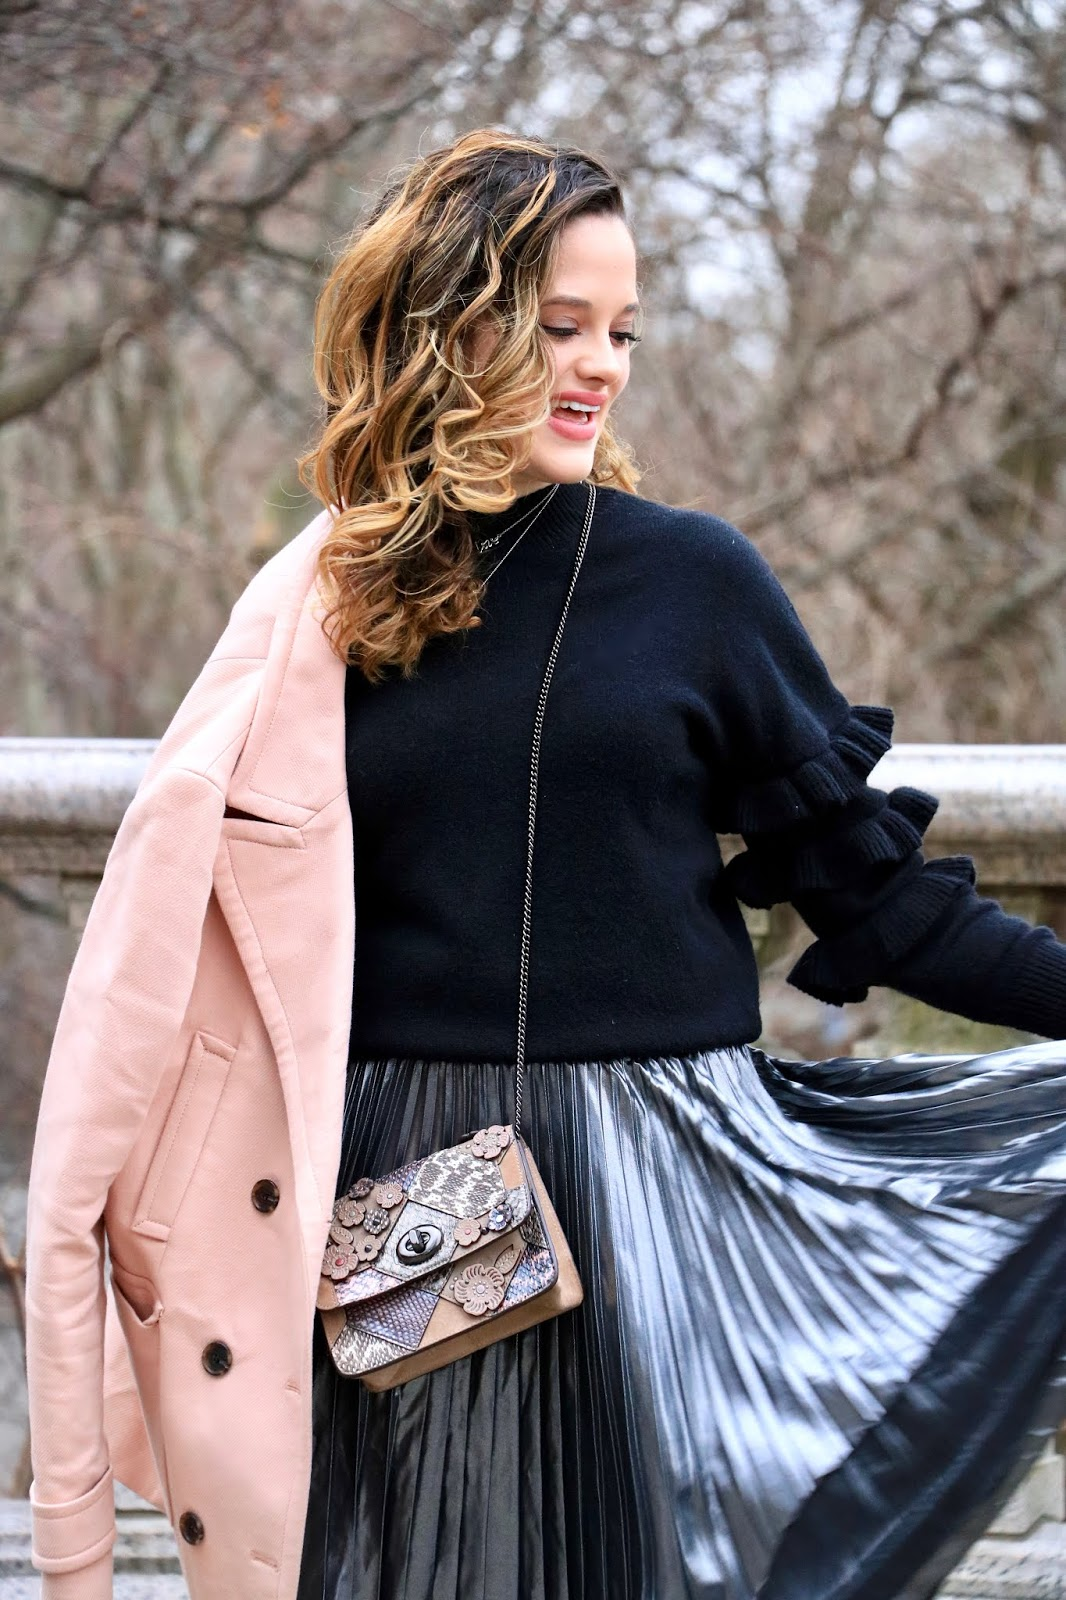 Nyc fashion blogger Kathleen Harper's winter outfits